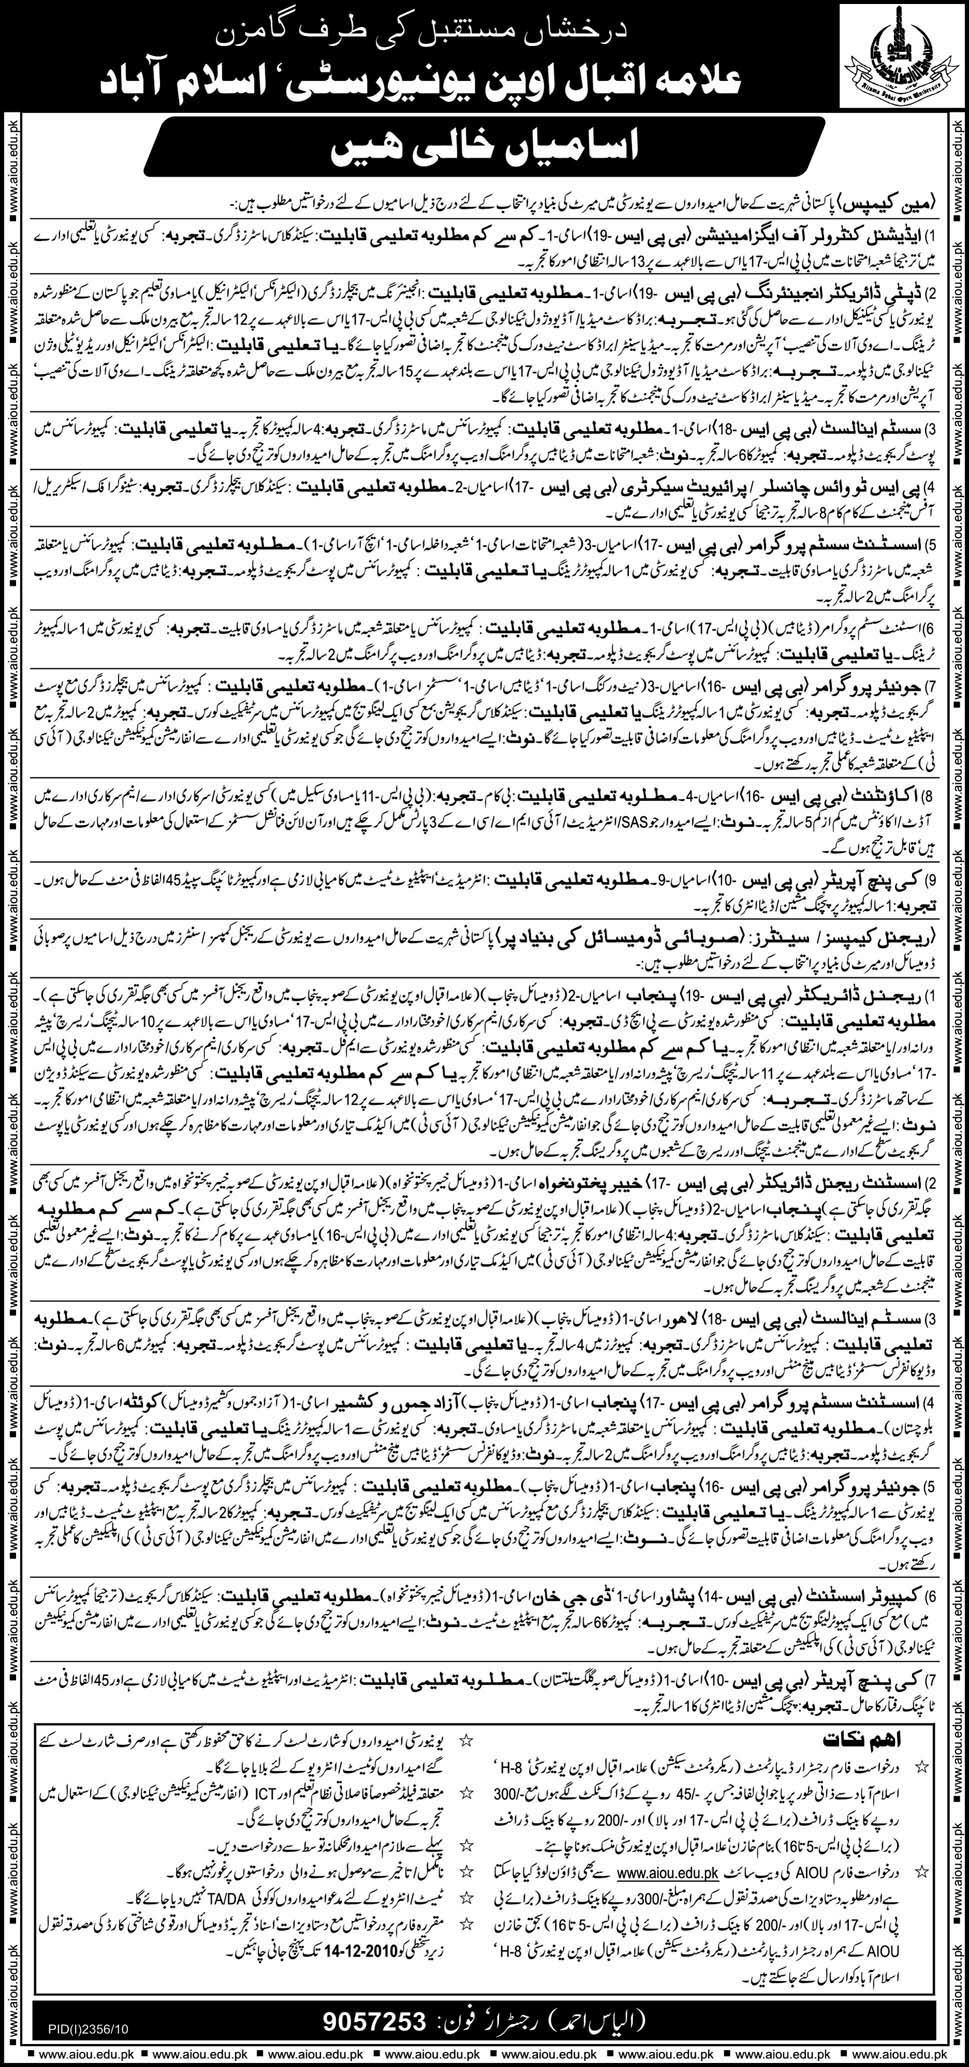 aiou paper checker jobs Can u tell me how v can apply 4 paper duty of aiou sir i have completed by mcom degree now how can i get tutor job in aiou i want to become aiou tutor.